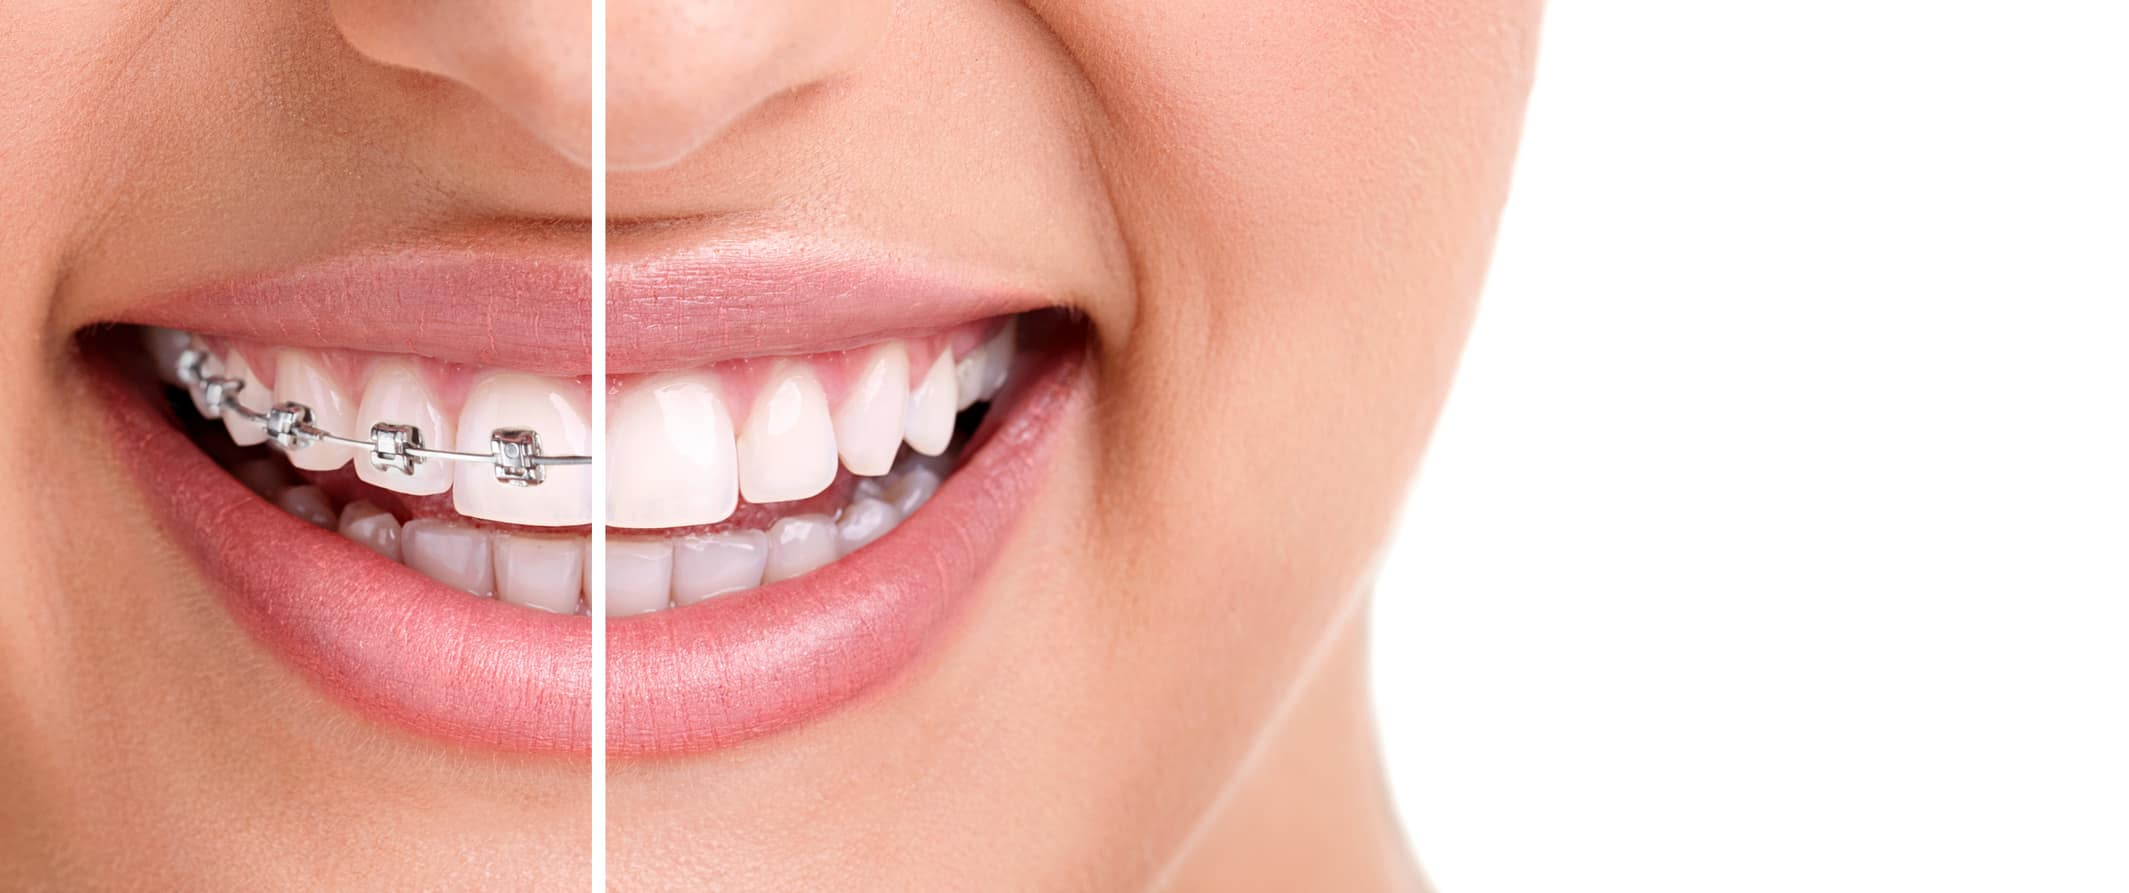 woman teeth and smile. Close up,half with braces